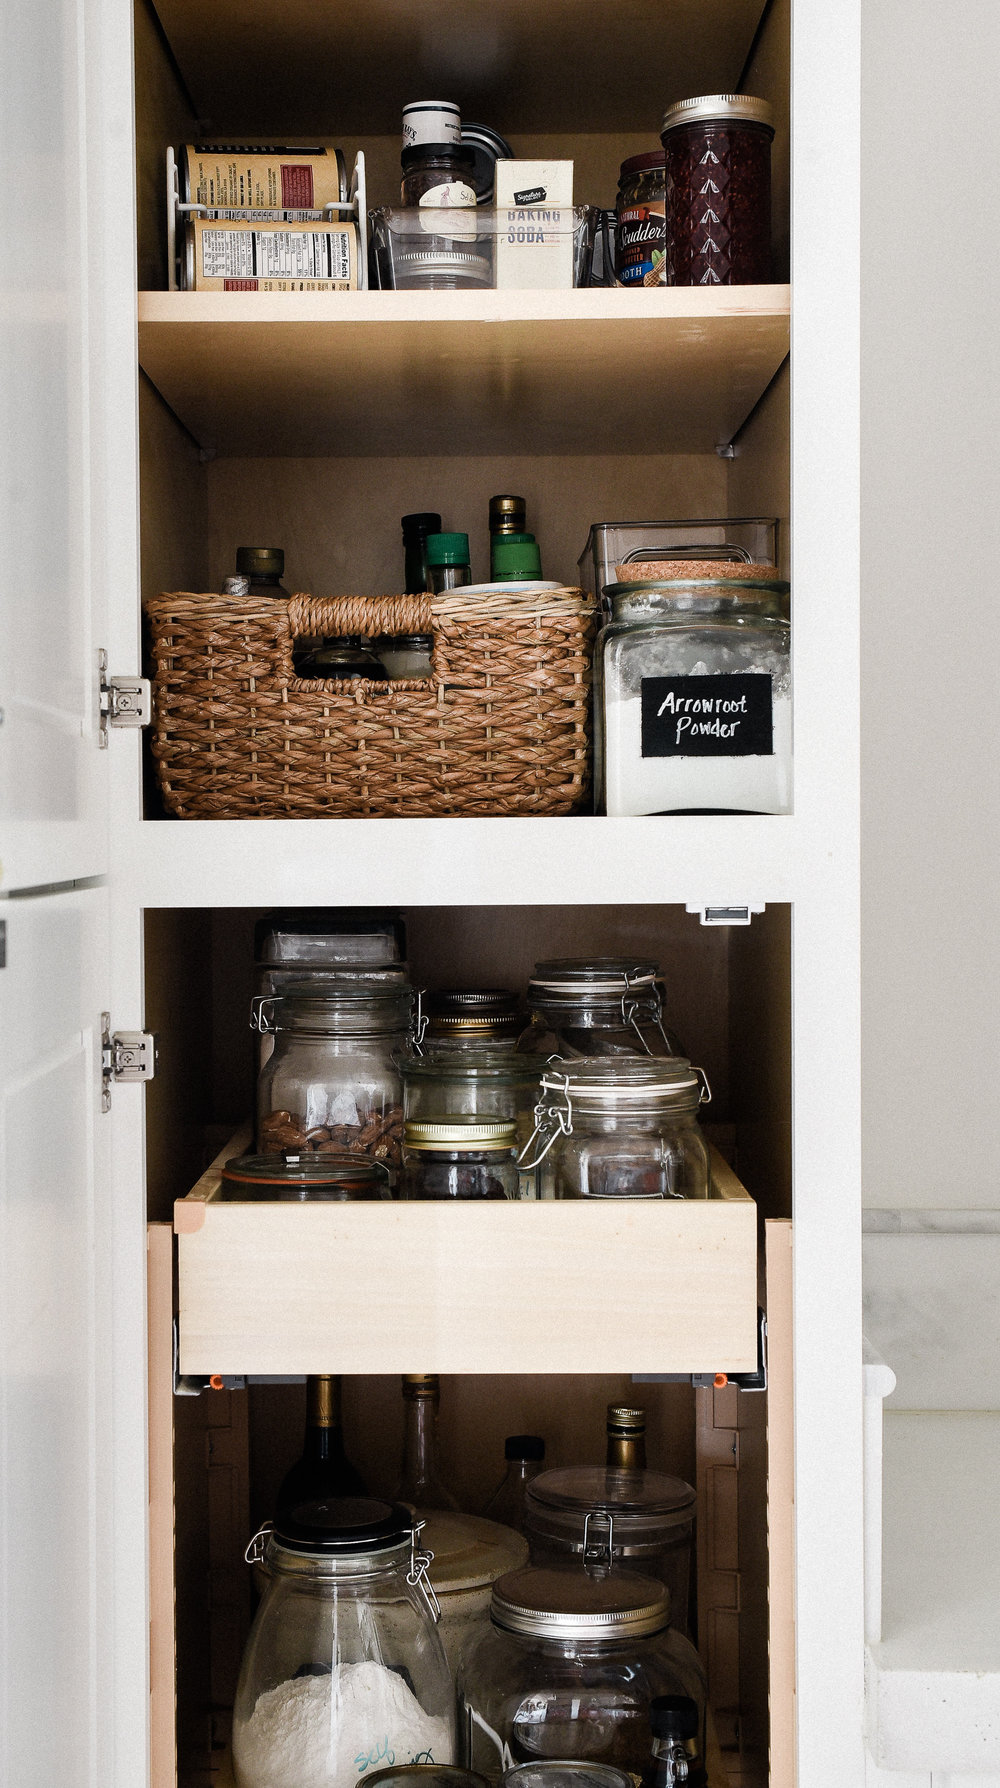 Organizing kitchen cabinets and cupboards - pantry organization ideas | boxwoodavenue.com